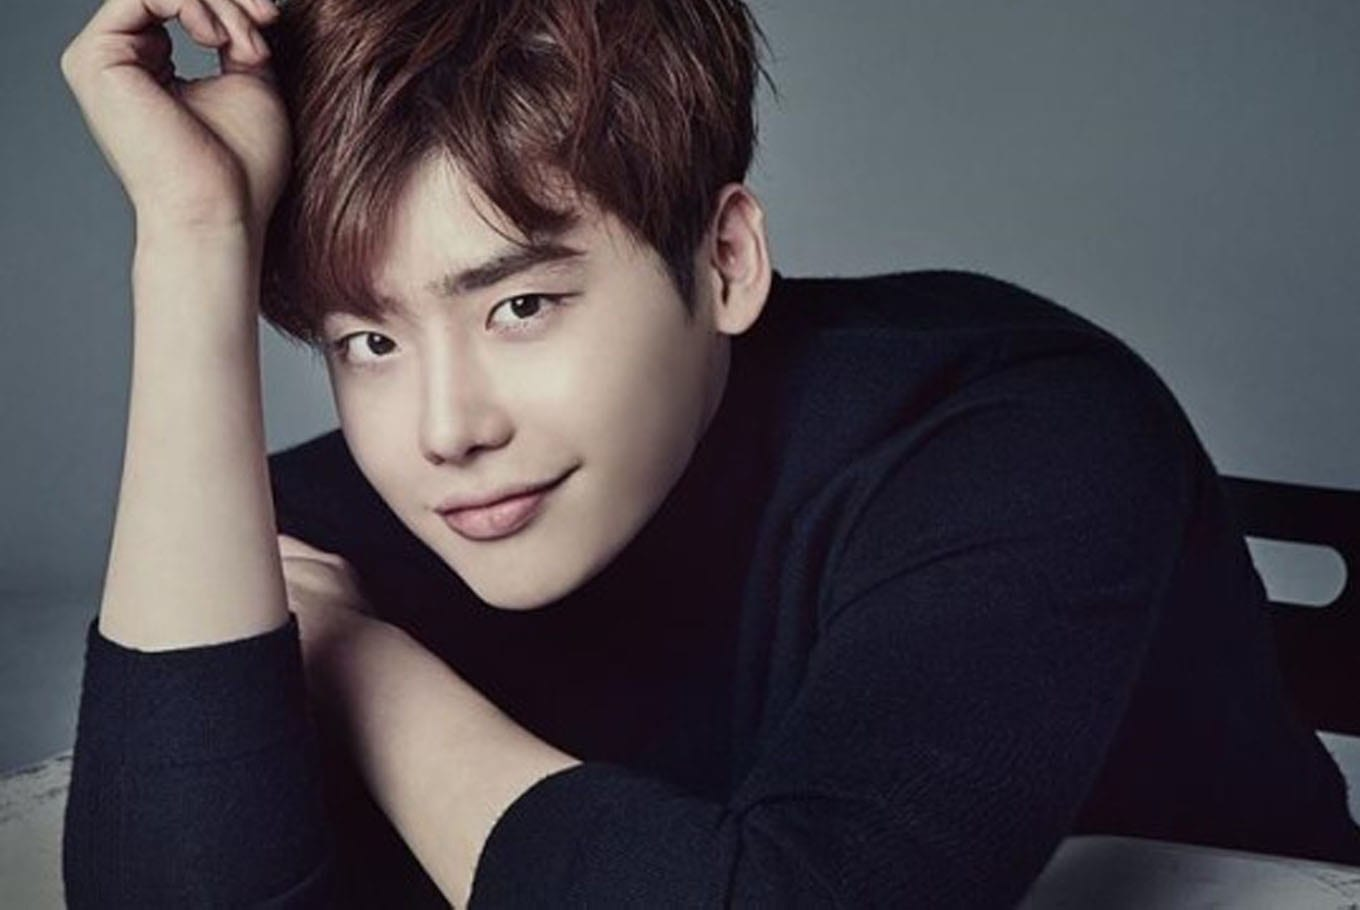 Lee Jong Suk in Big Mouth